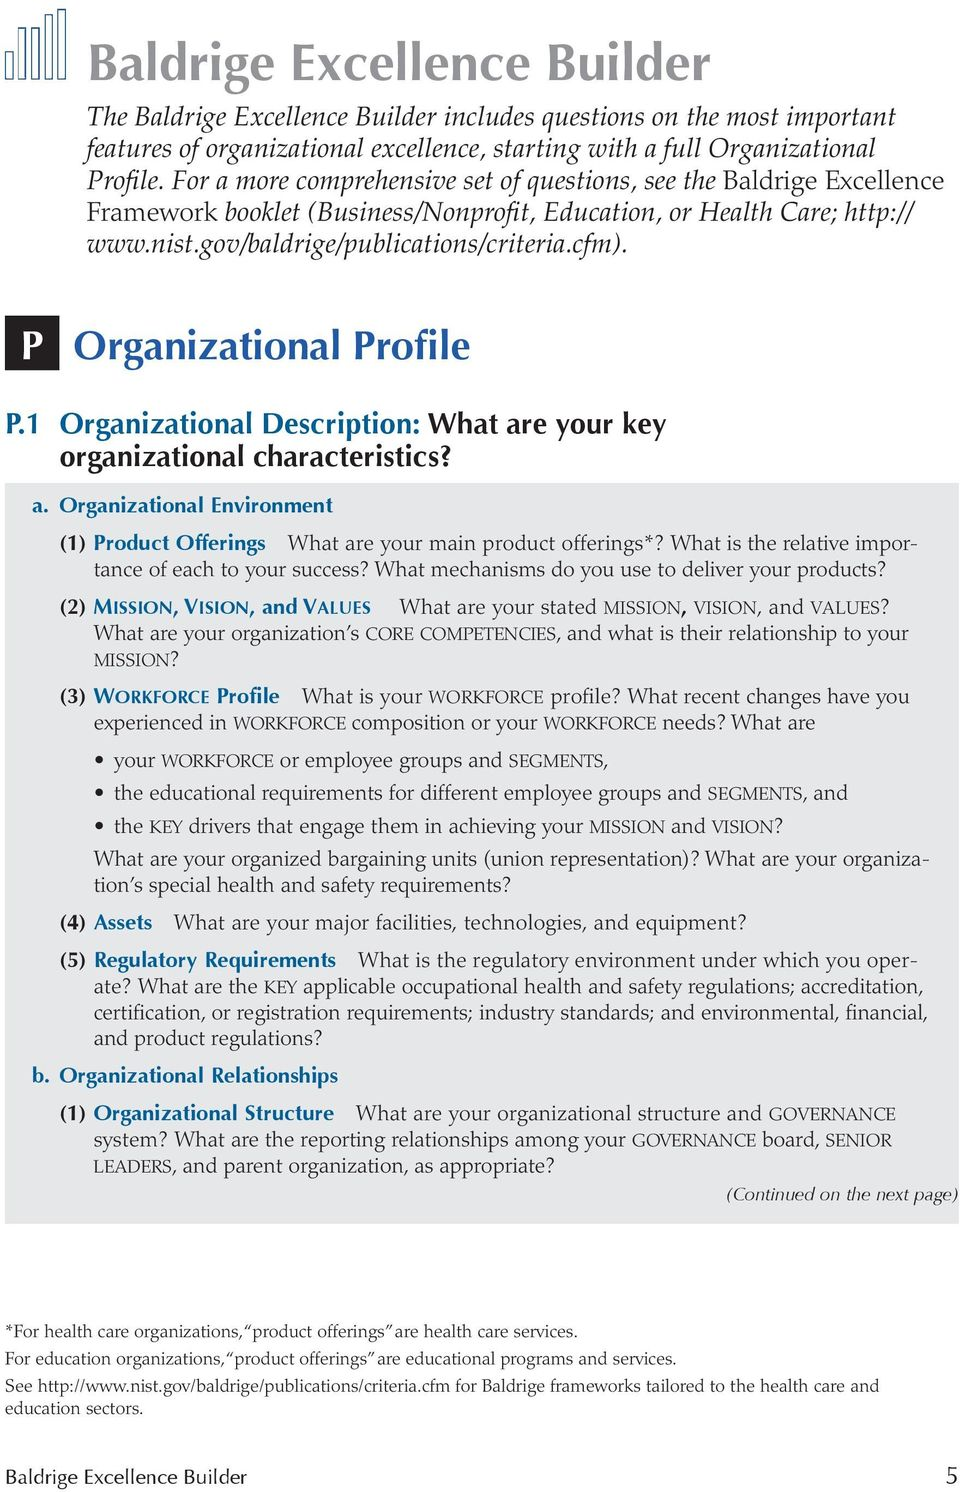 P Organizational Profile P.1 Organizational Description: What are your key organizational characteristics? a. Organizational Environment (1) Product Offerings What are your main product offerings*?